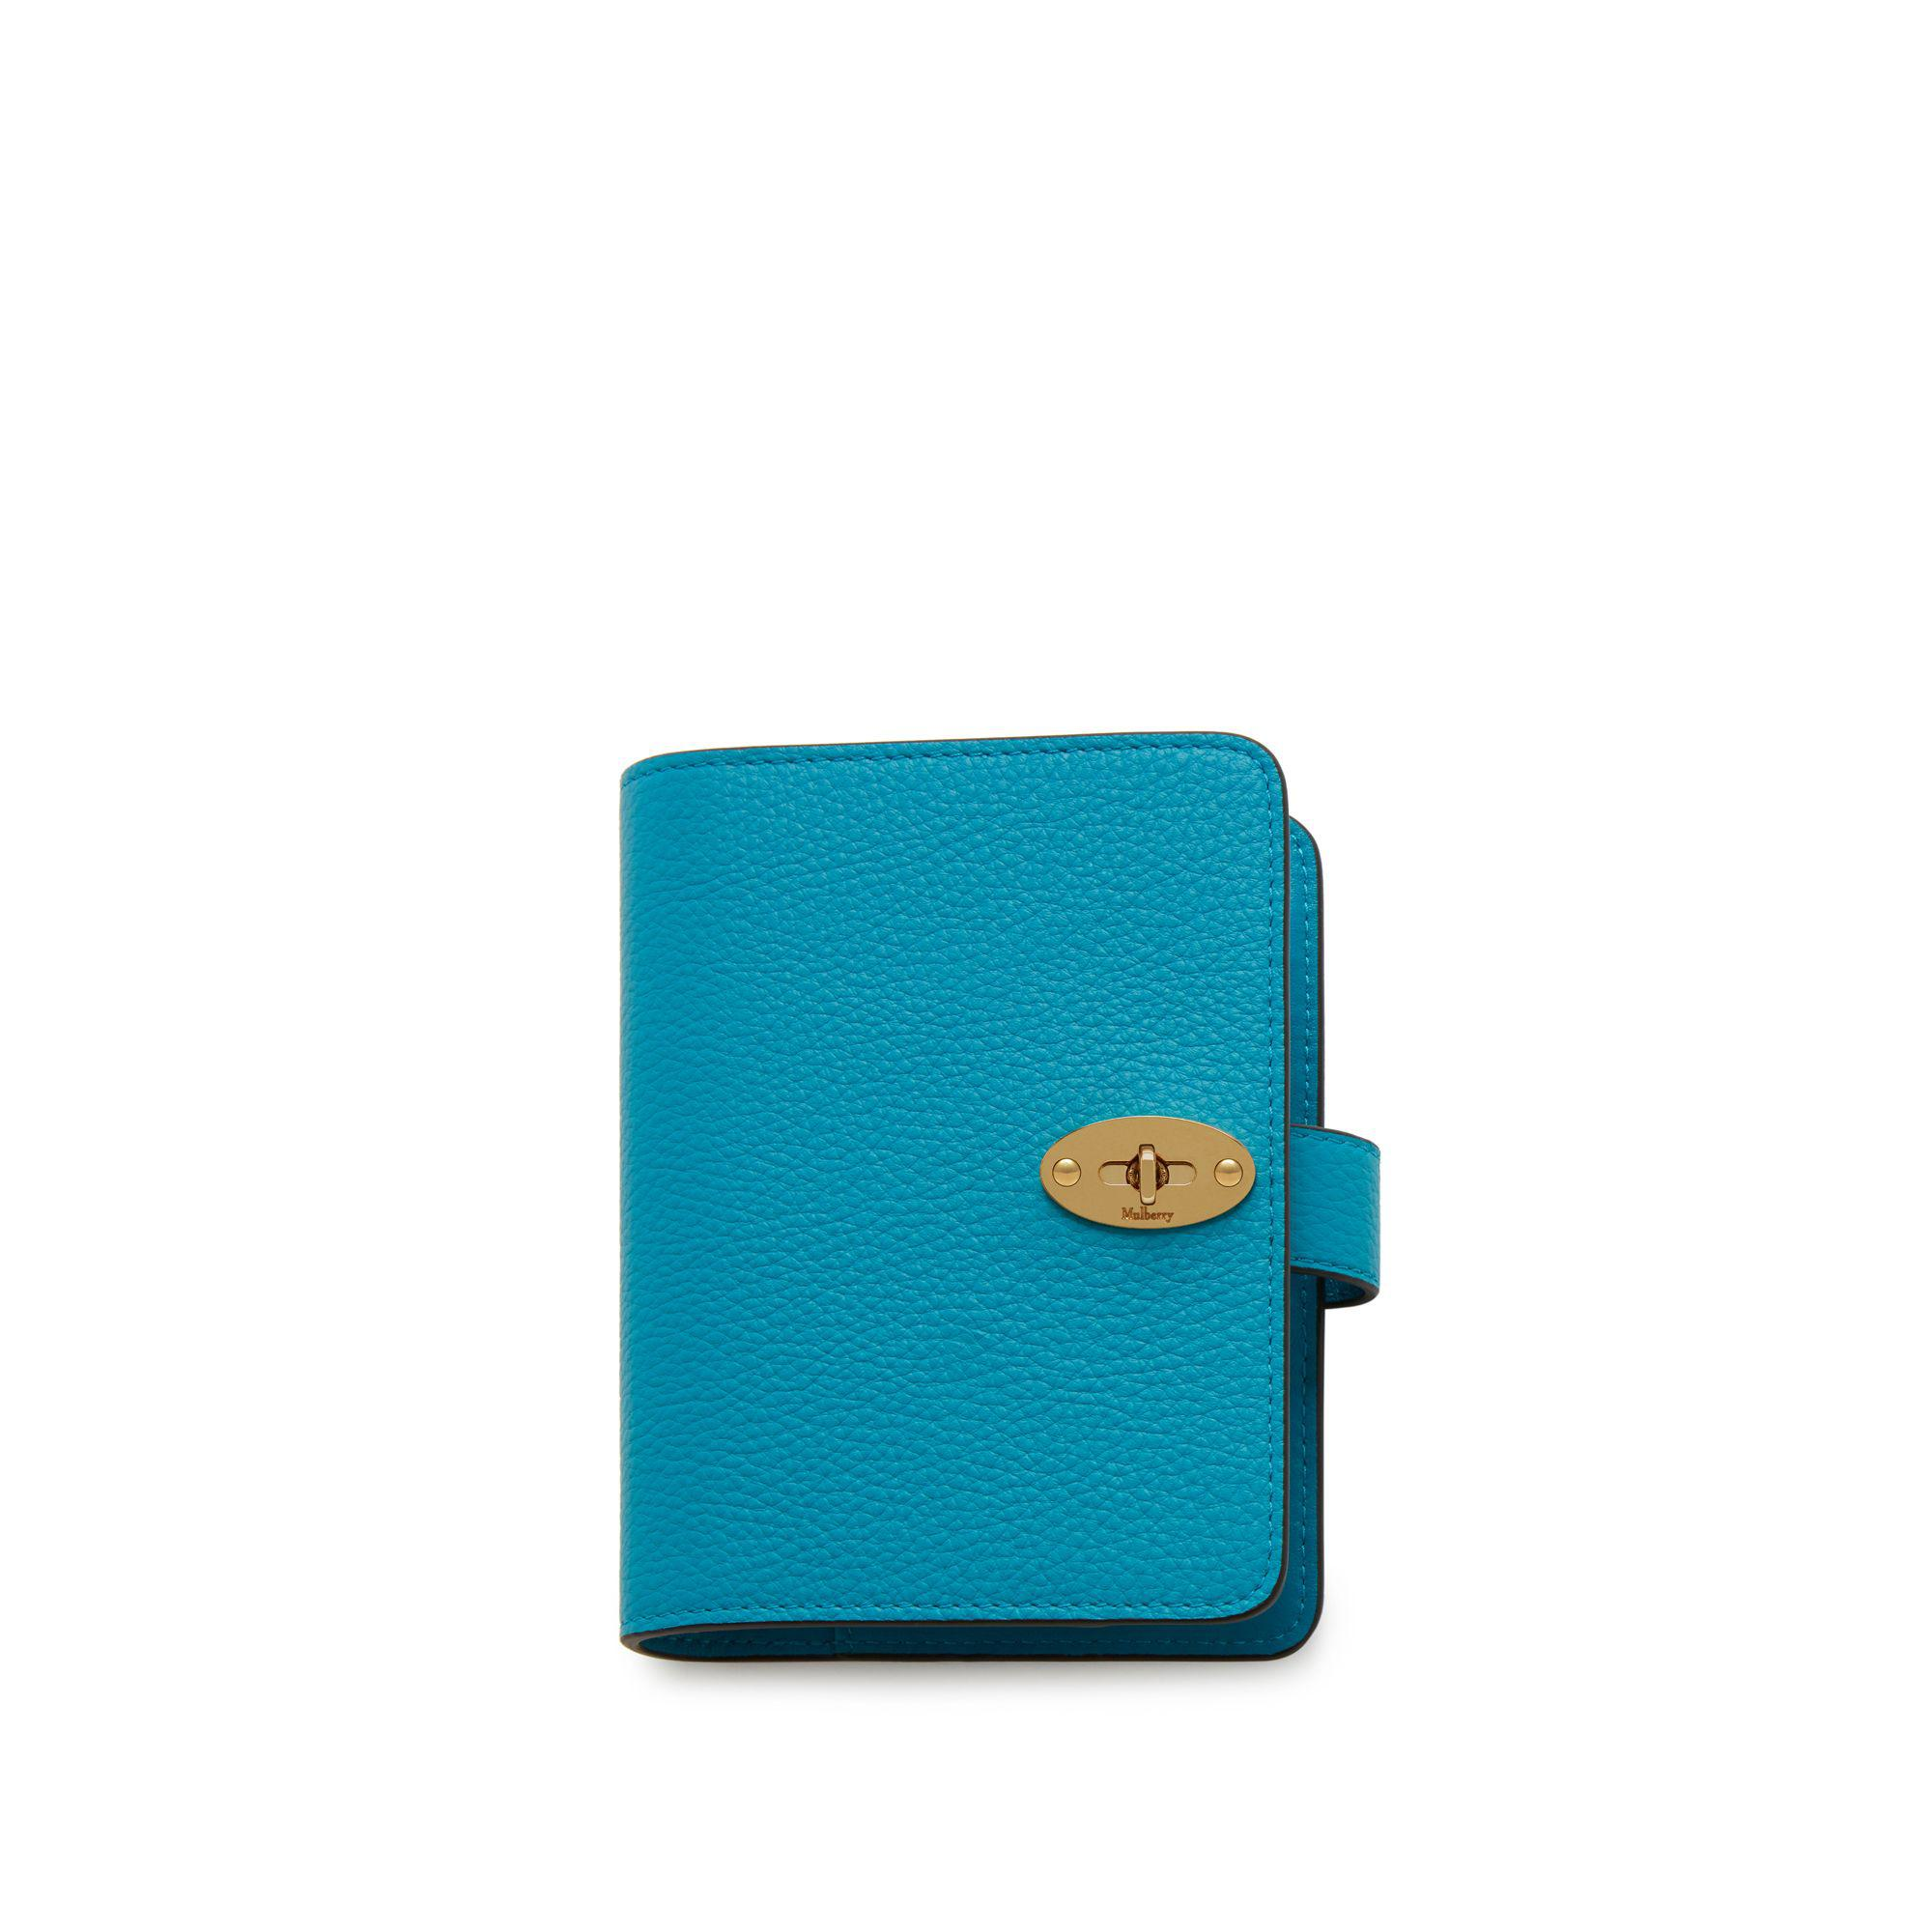 Mulberry Postman s Lock Pocket Book In Azure Small Classic Grain in ... 4401bbbcef